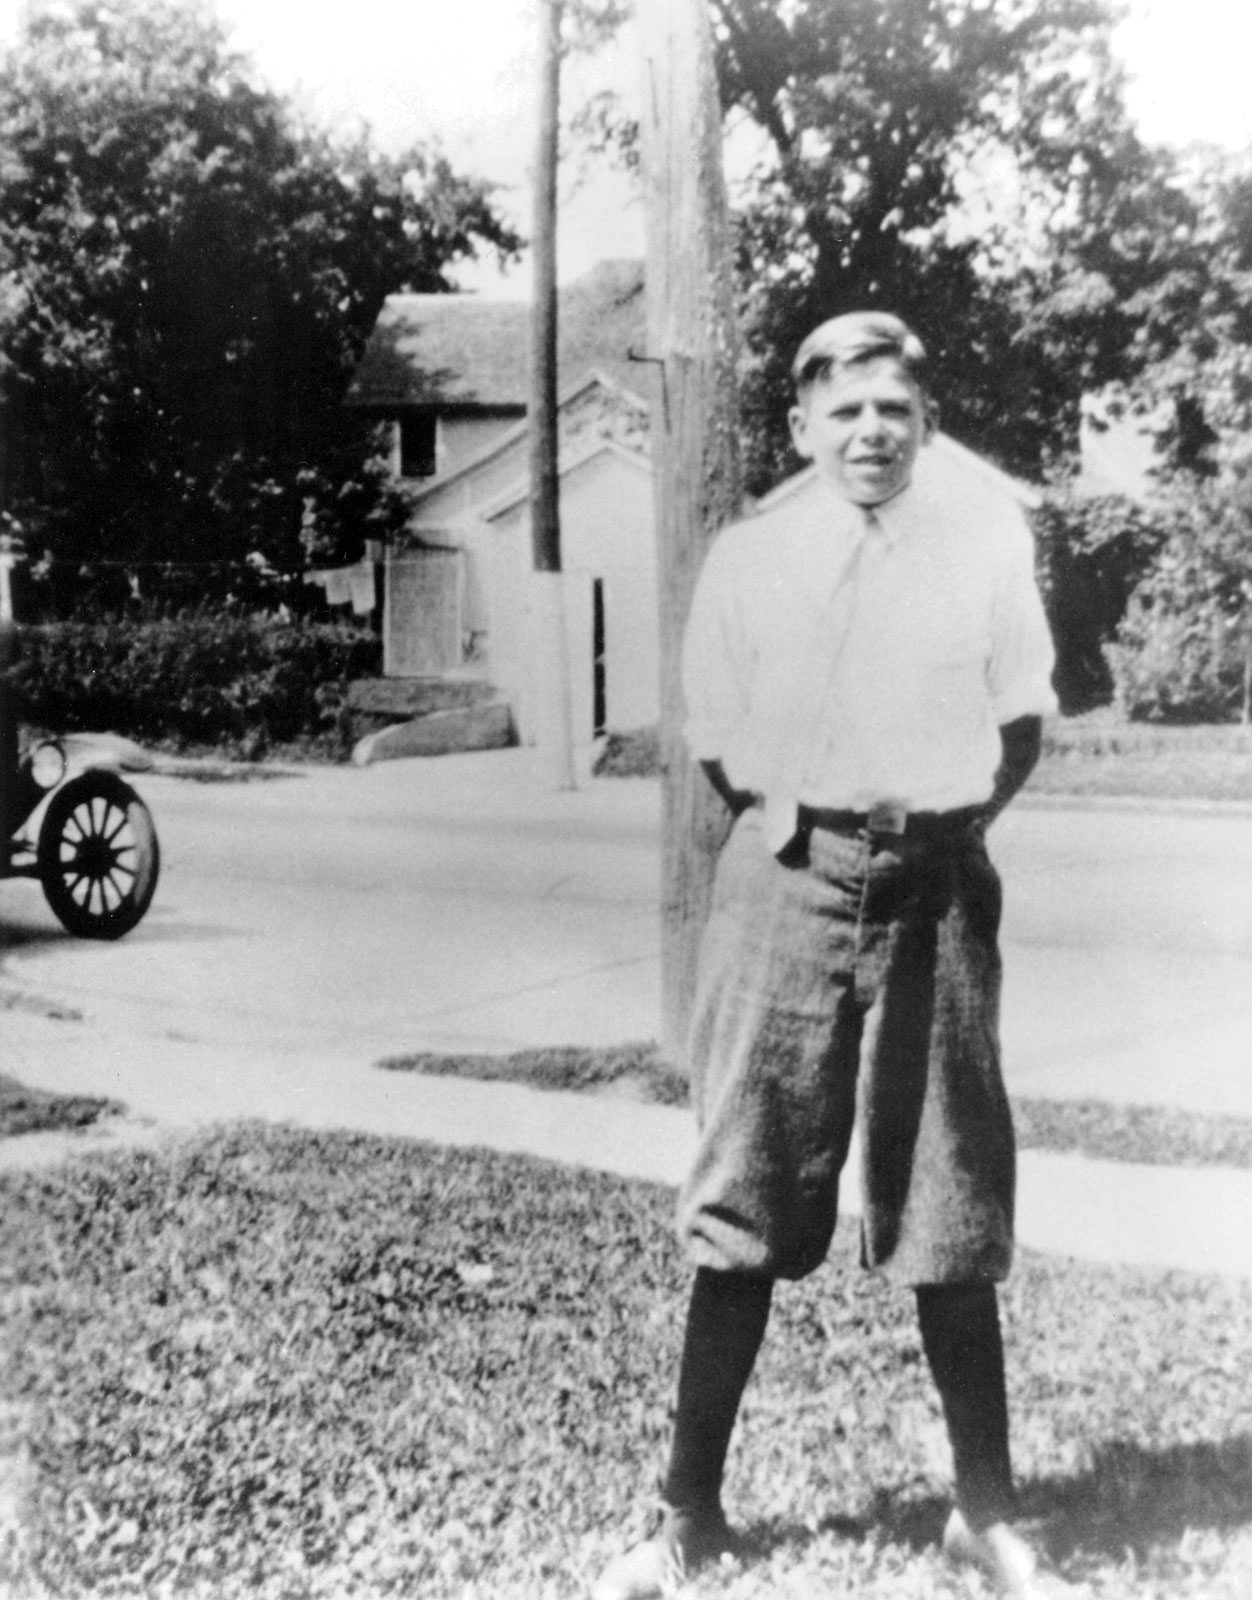 http://upload.wikimedia.org/wikipedia/commons/1/1d/Ronald_Reagan_in_Dixon%2C_Illinois%2C_1920s.jpg